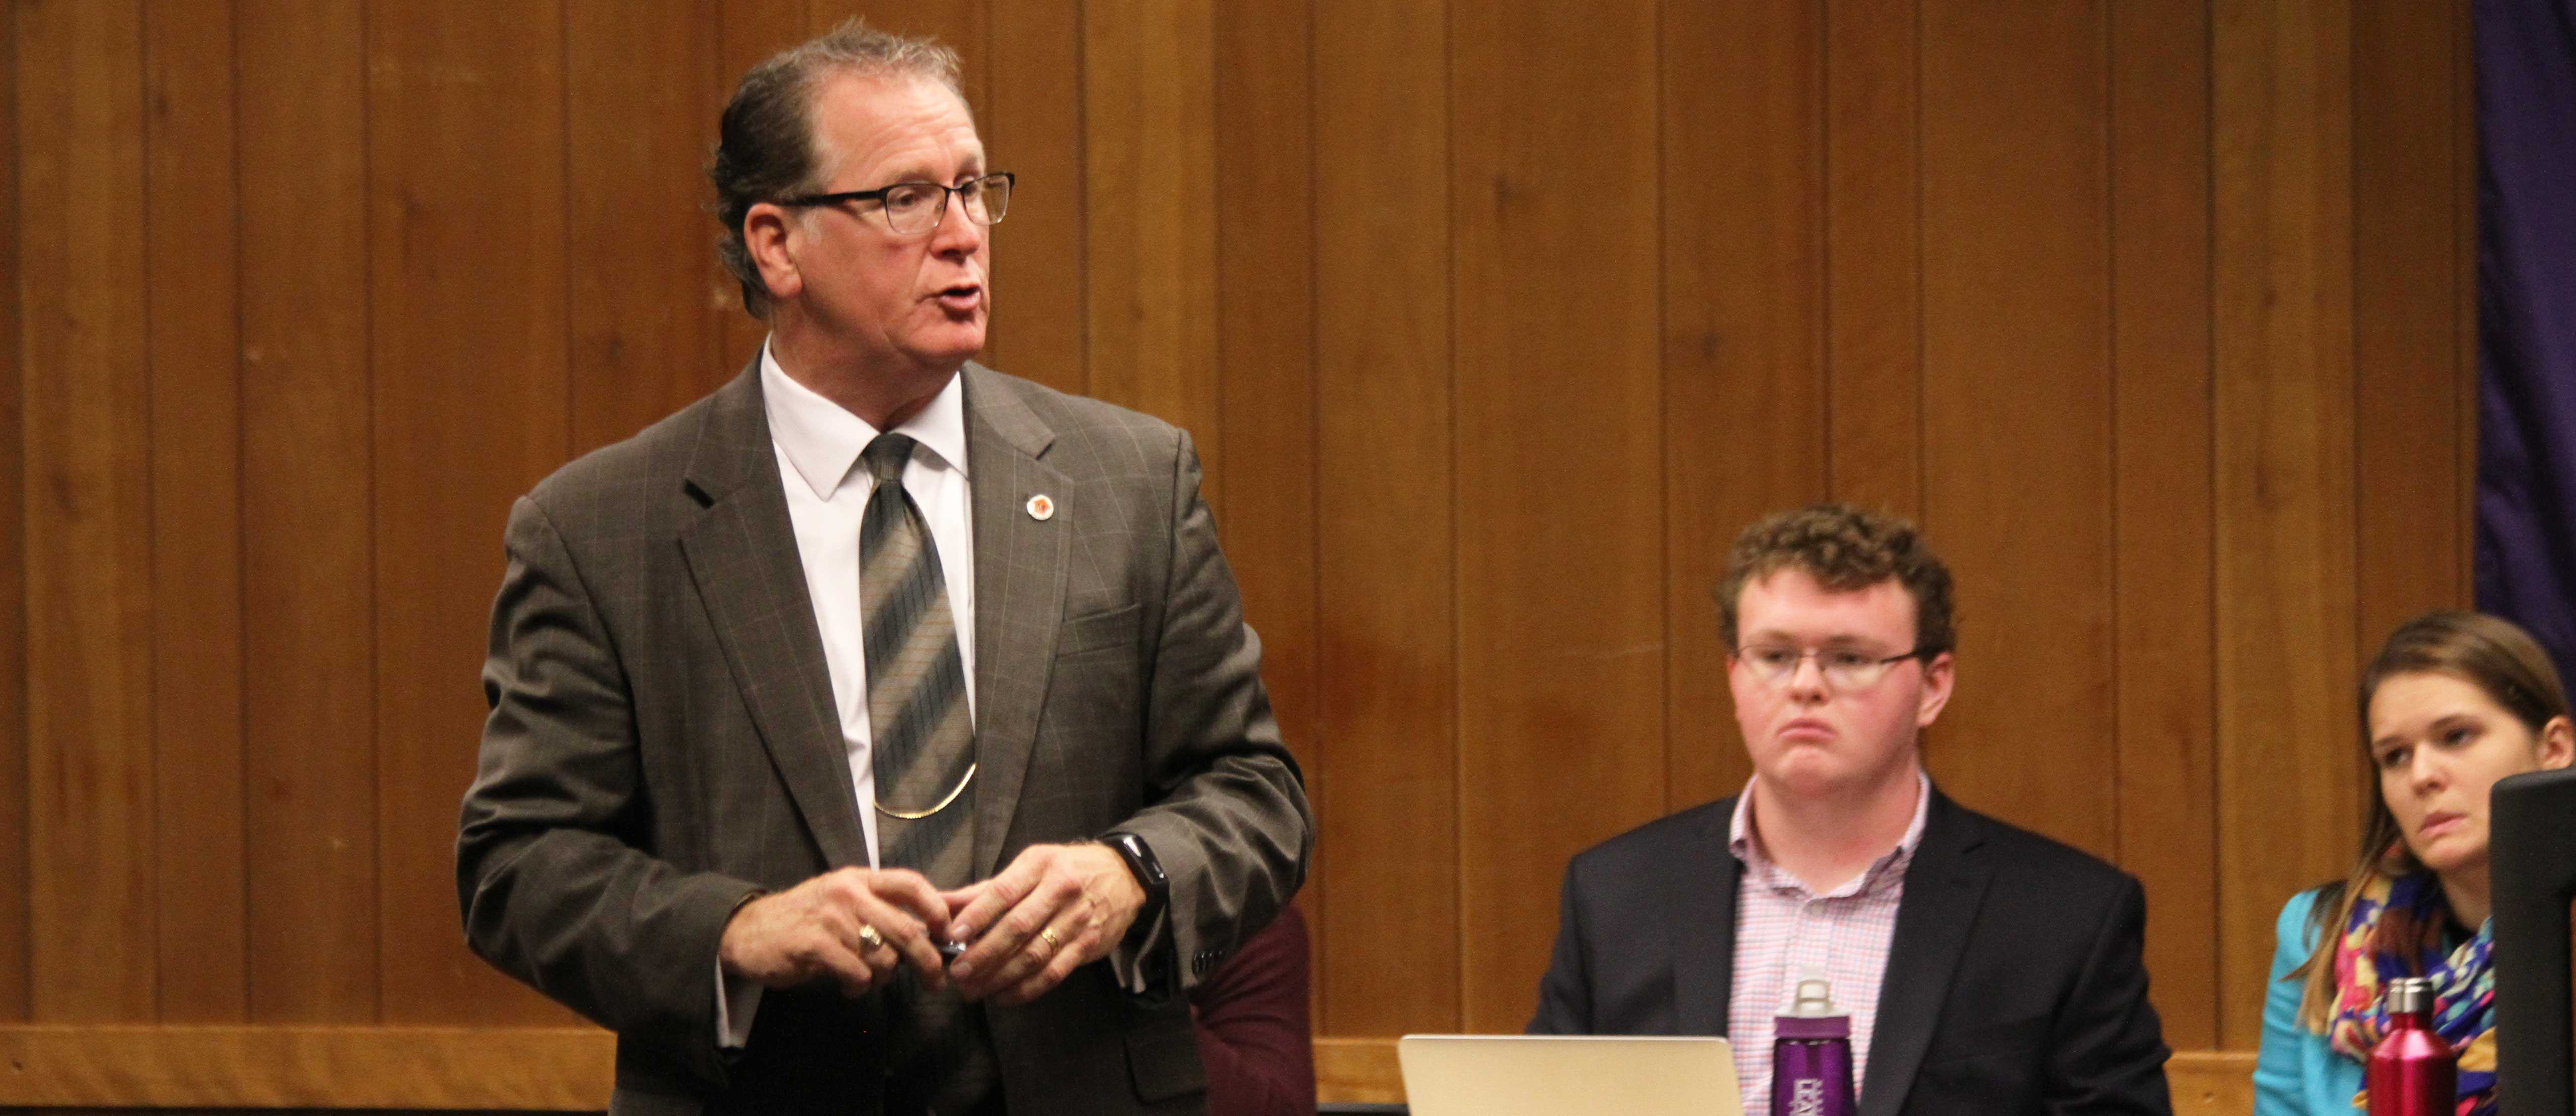 Superintendent of Macomb Community unit School District 185 Patrick Twomey speaks to SGA Tuesday night